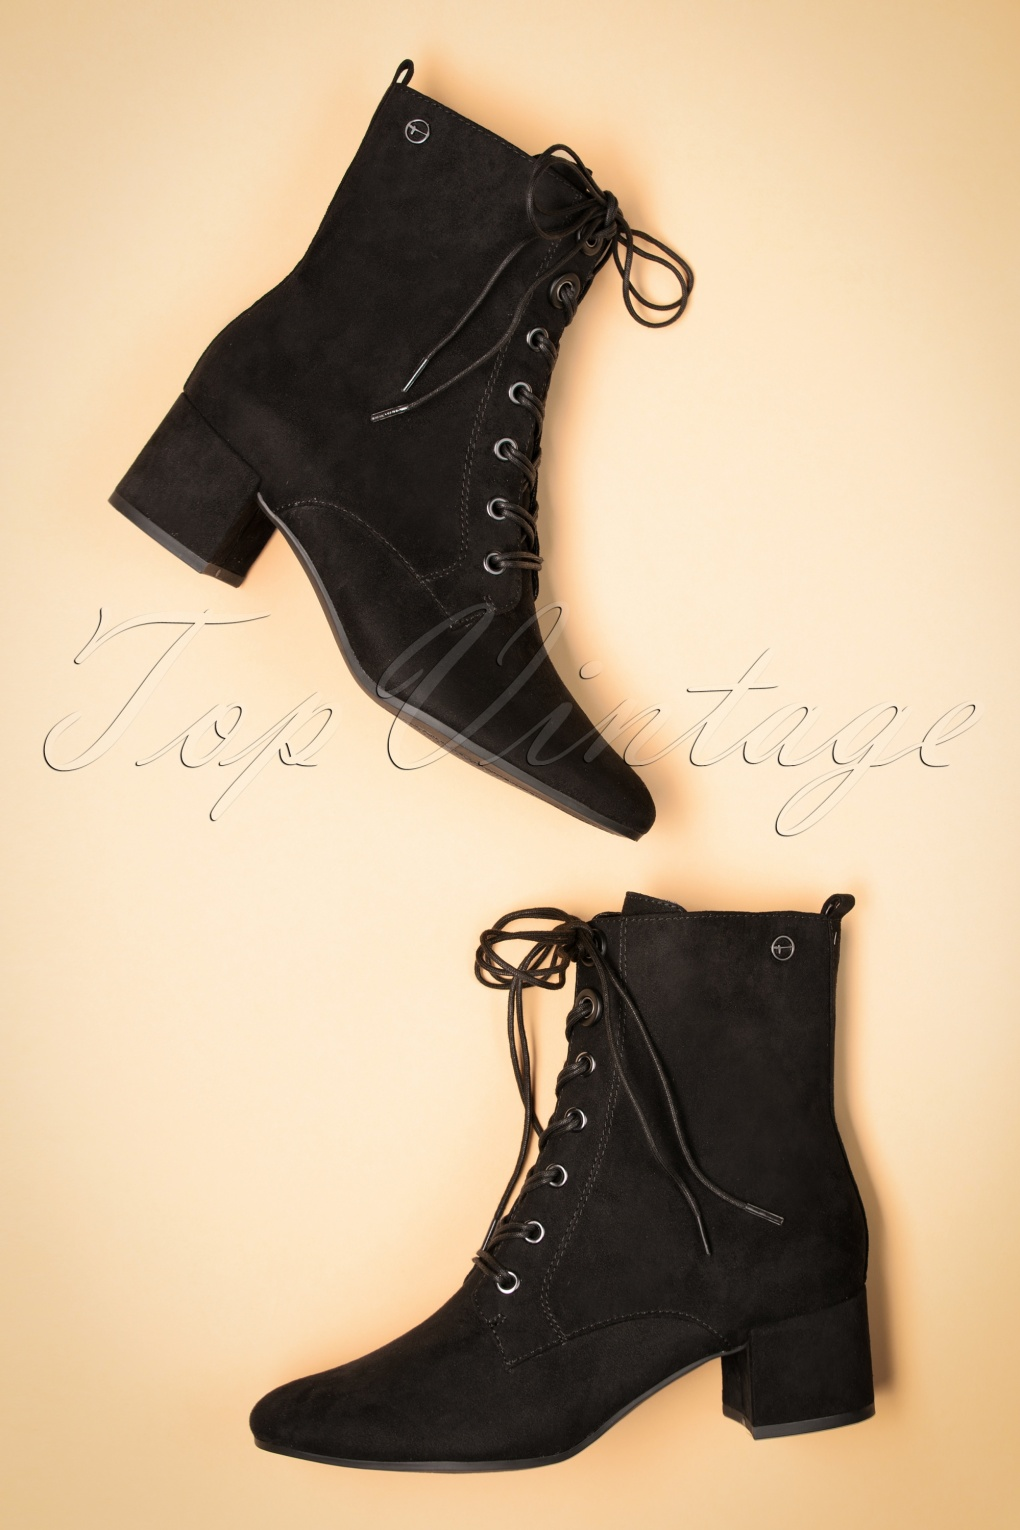 Vintage Boots- Buy Winter Retro Boots 70s Livia Lace Up Ankle Booties in Black £63.33 AT vintagedancer.com